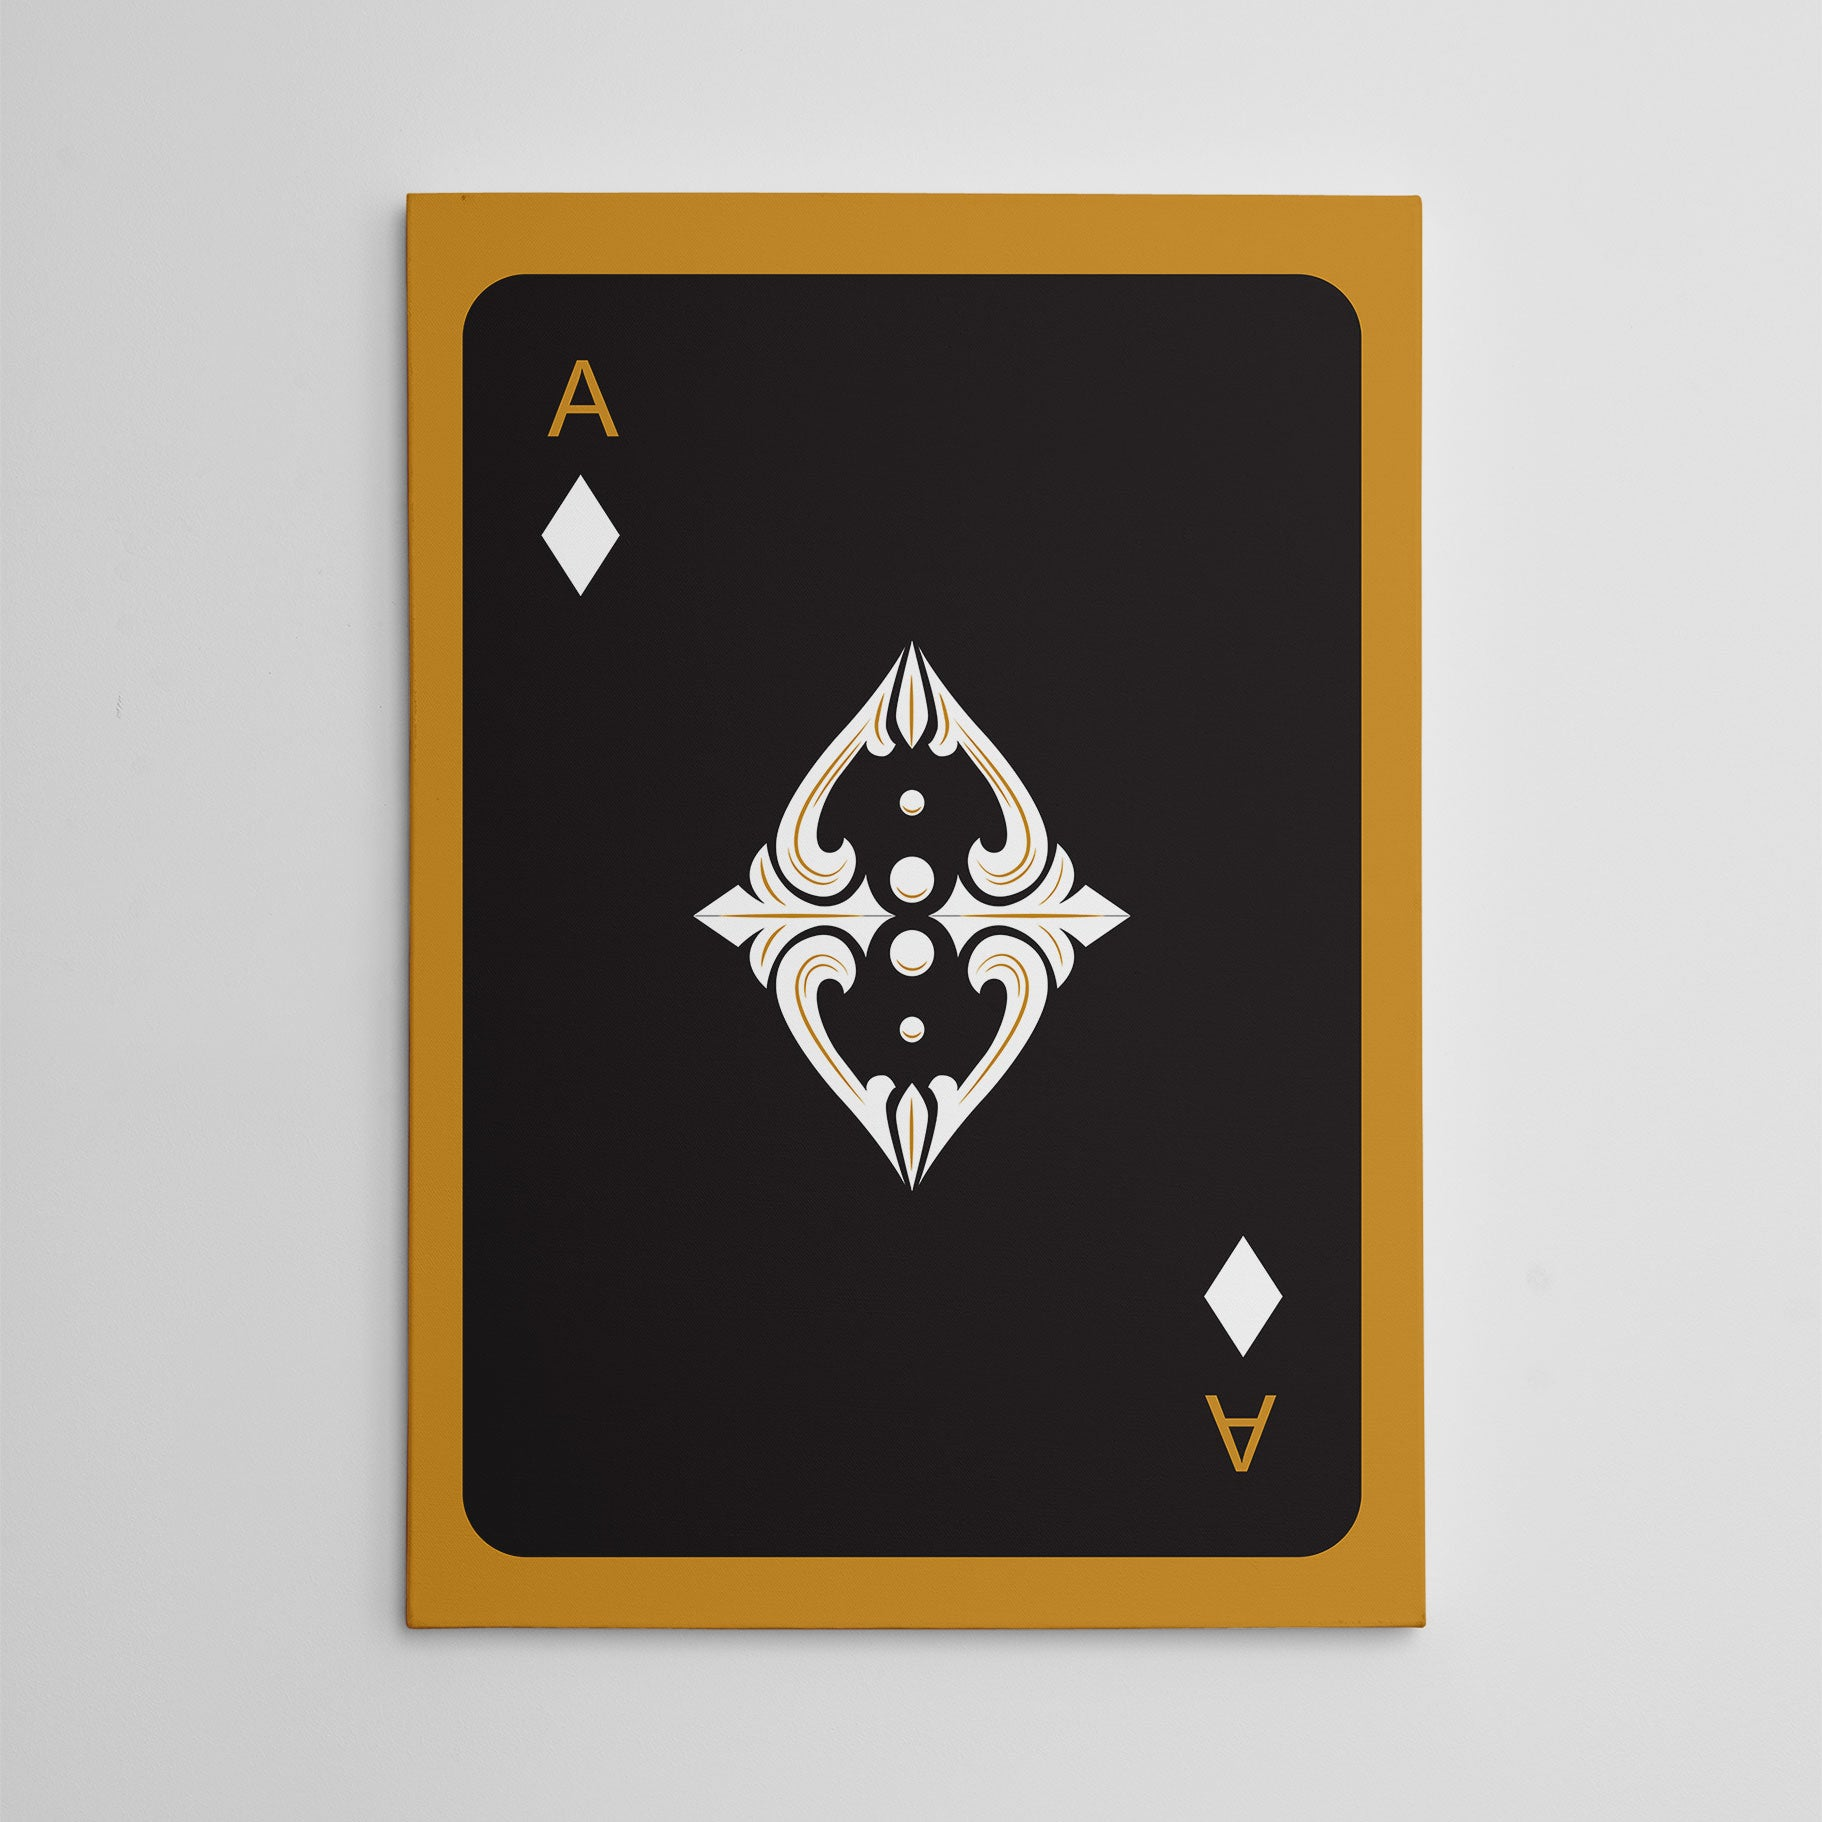 Canvas print with black ace of diamonds playing card, on gold background.